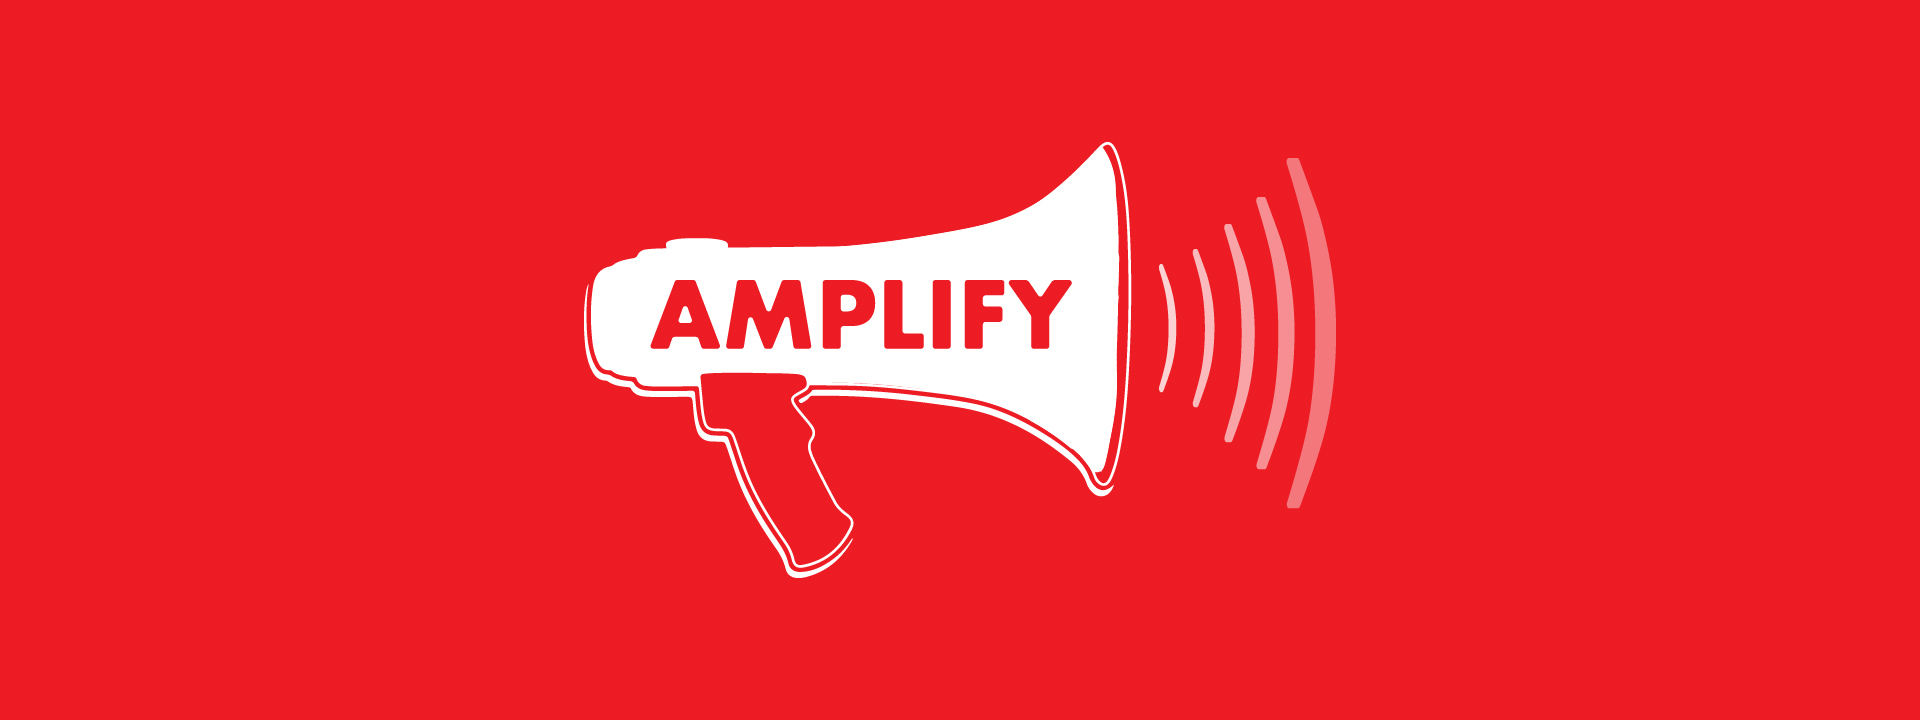 Amplify_banner with artwork only